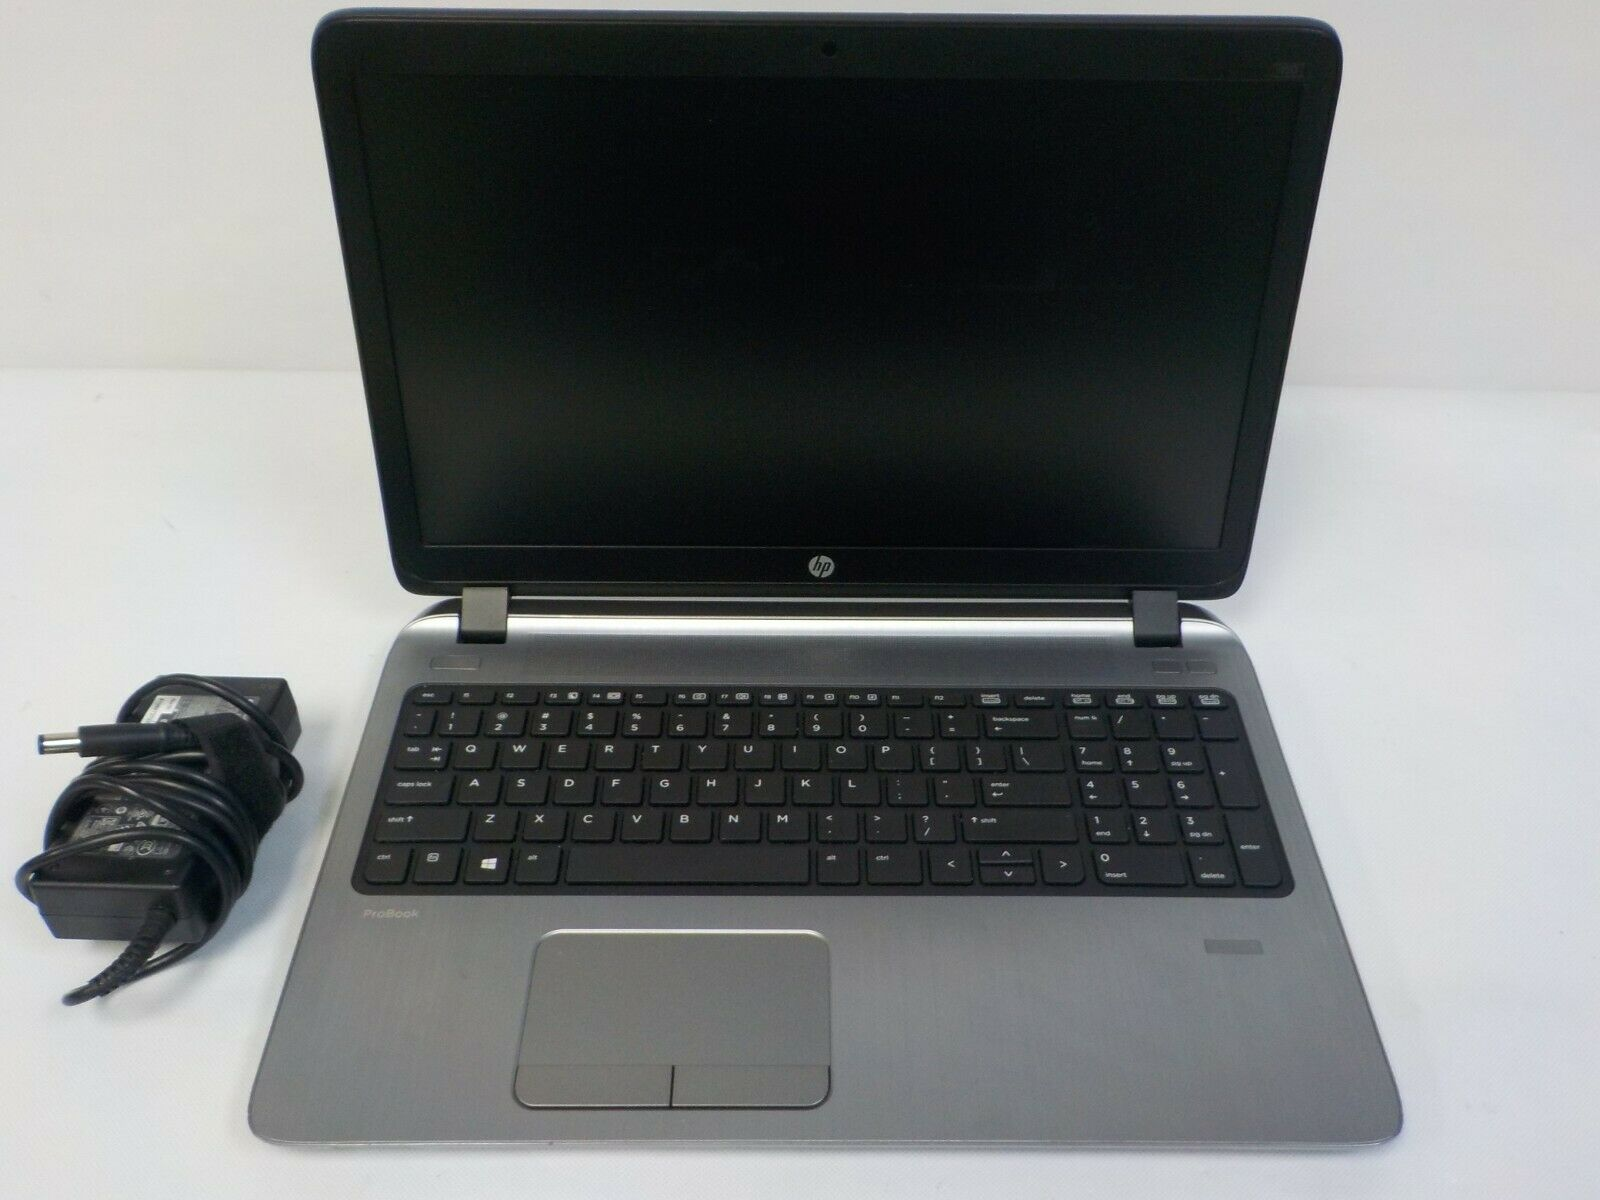 Laptop Windows - HP ProBook 450 G2 Intel Core i7-5500U 2.40GHz 8GB RAM 500GB HDD Windows 10 Pro